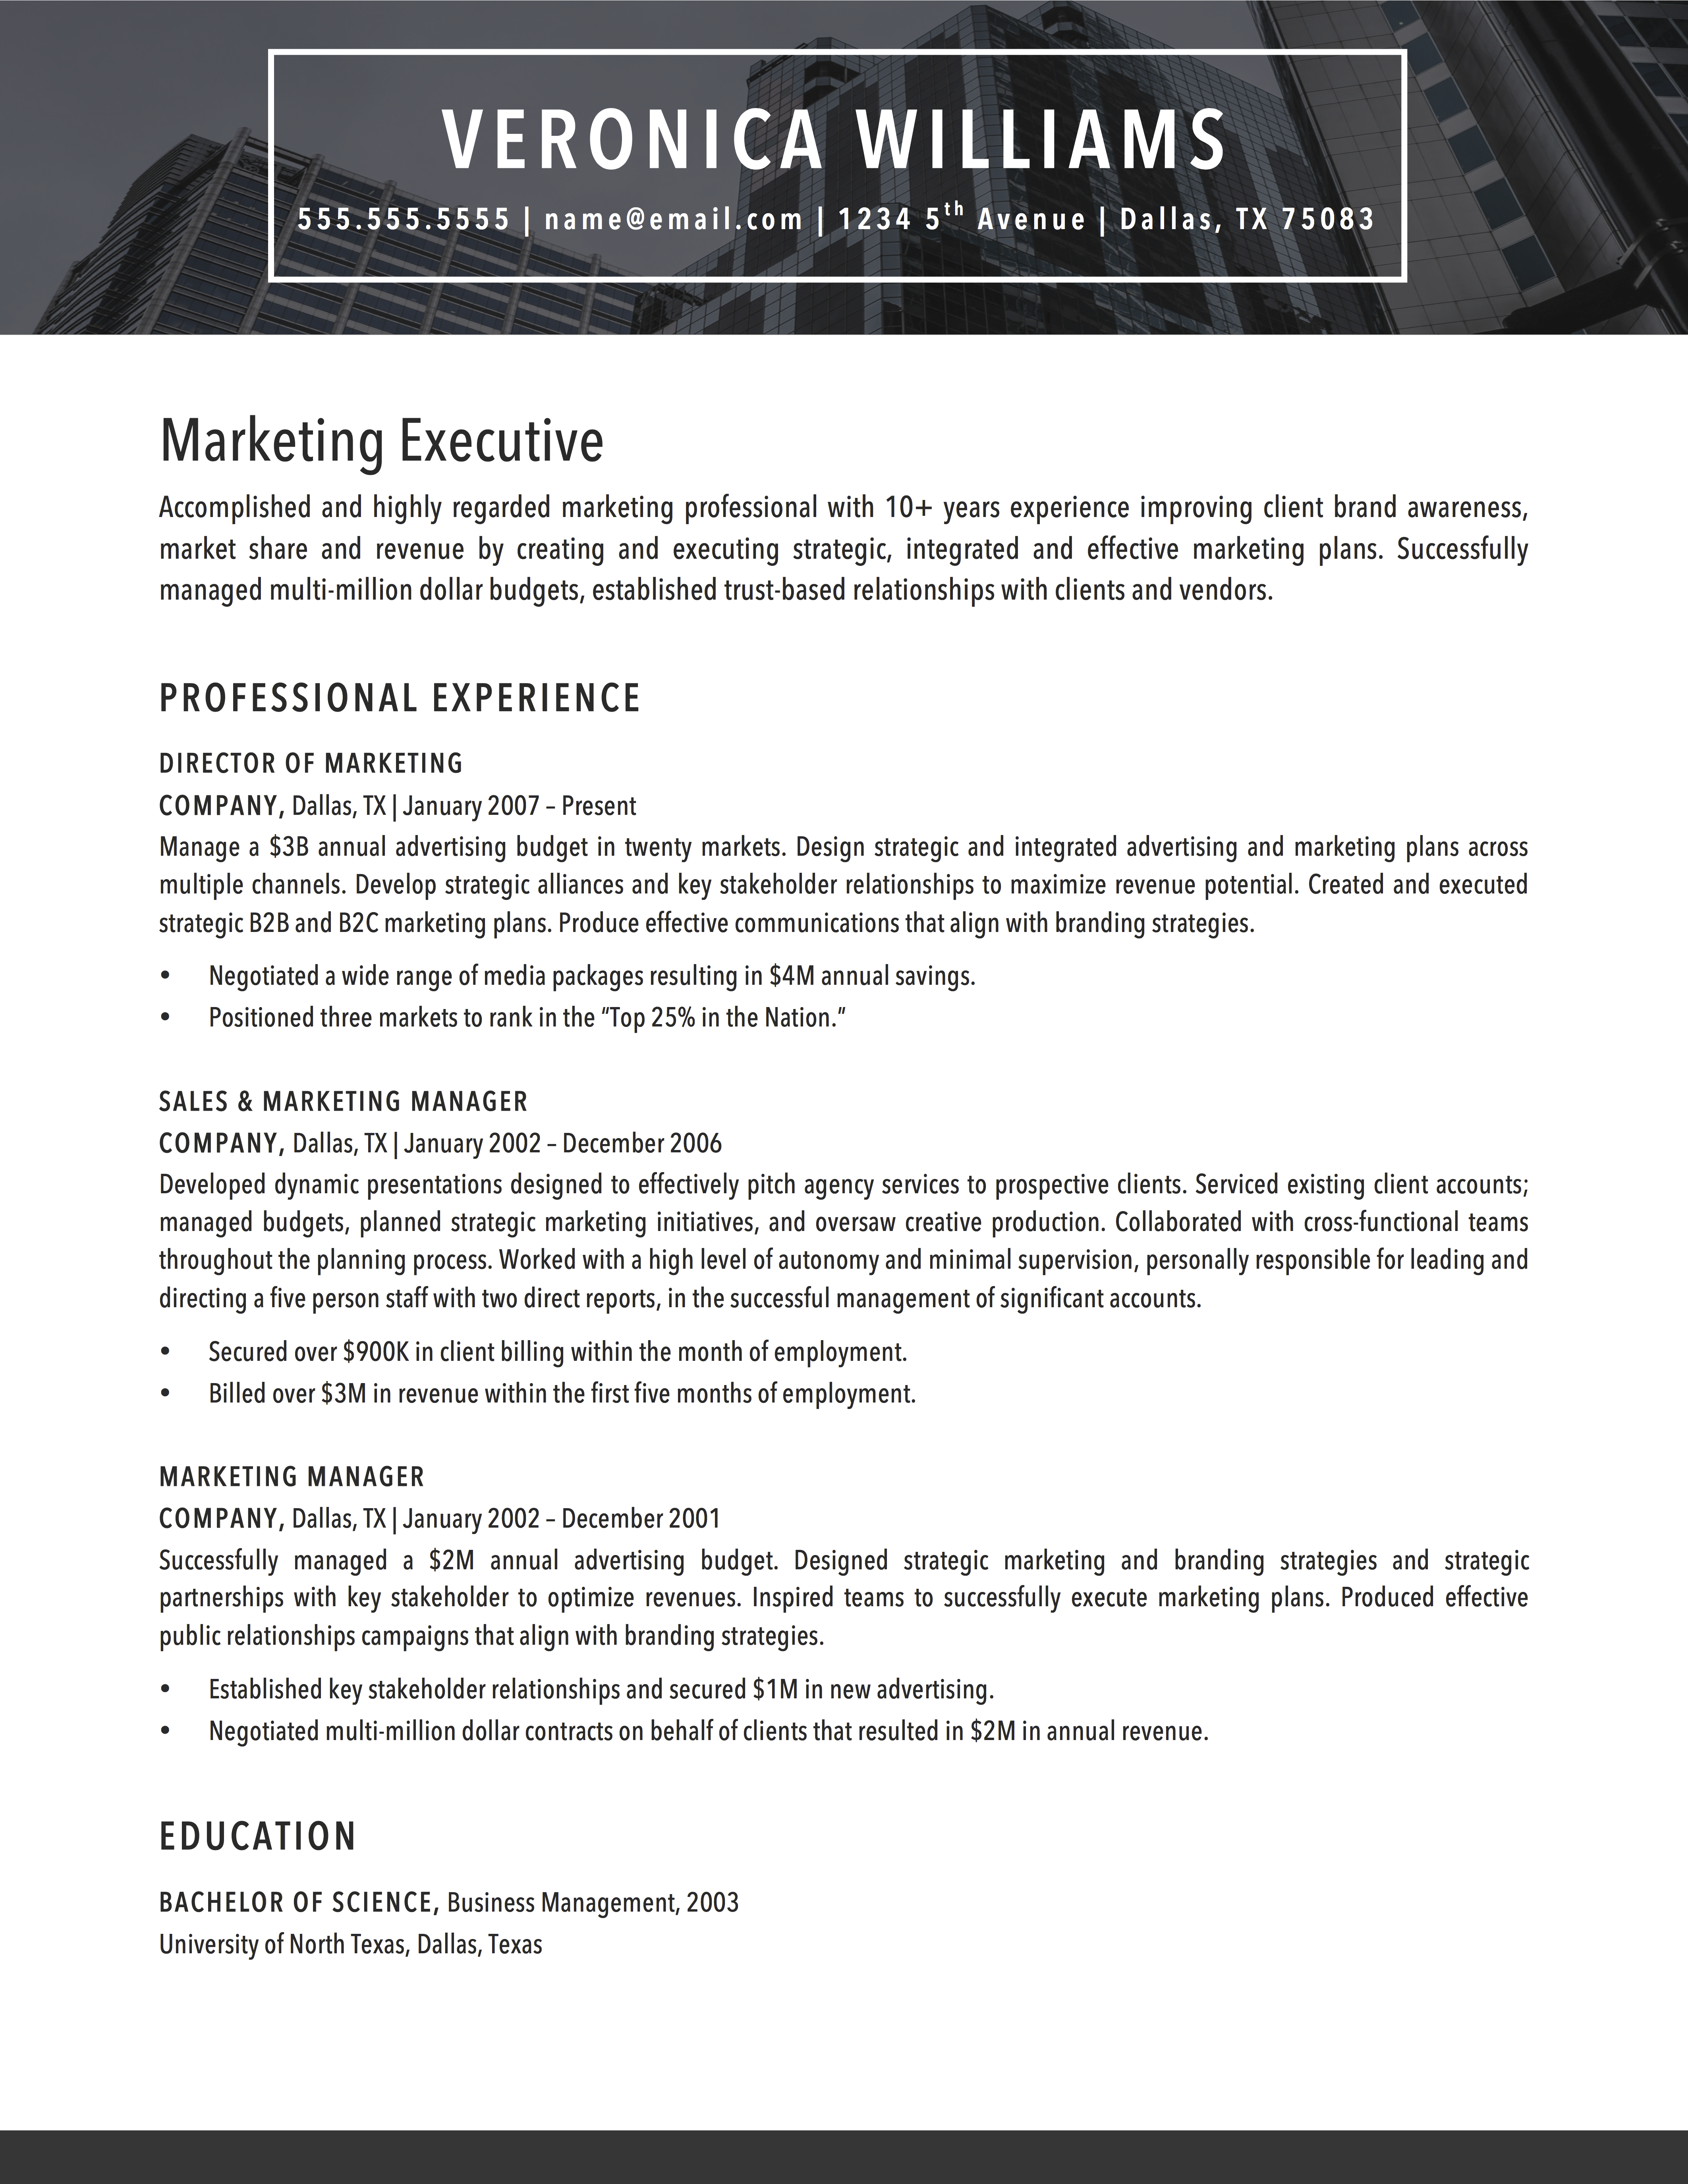 What Color Resume Paper Should You Use